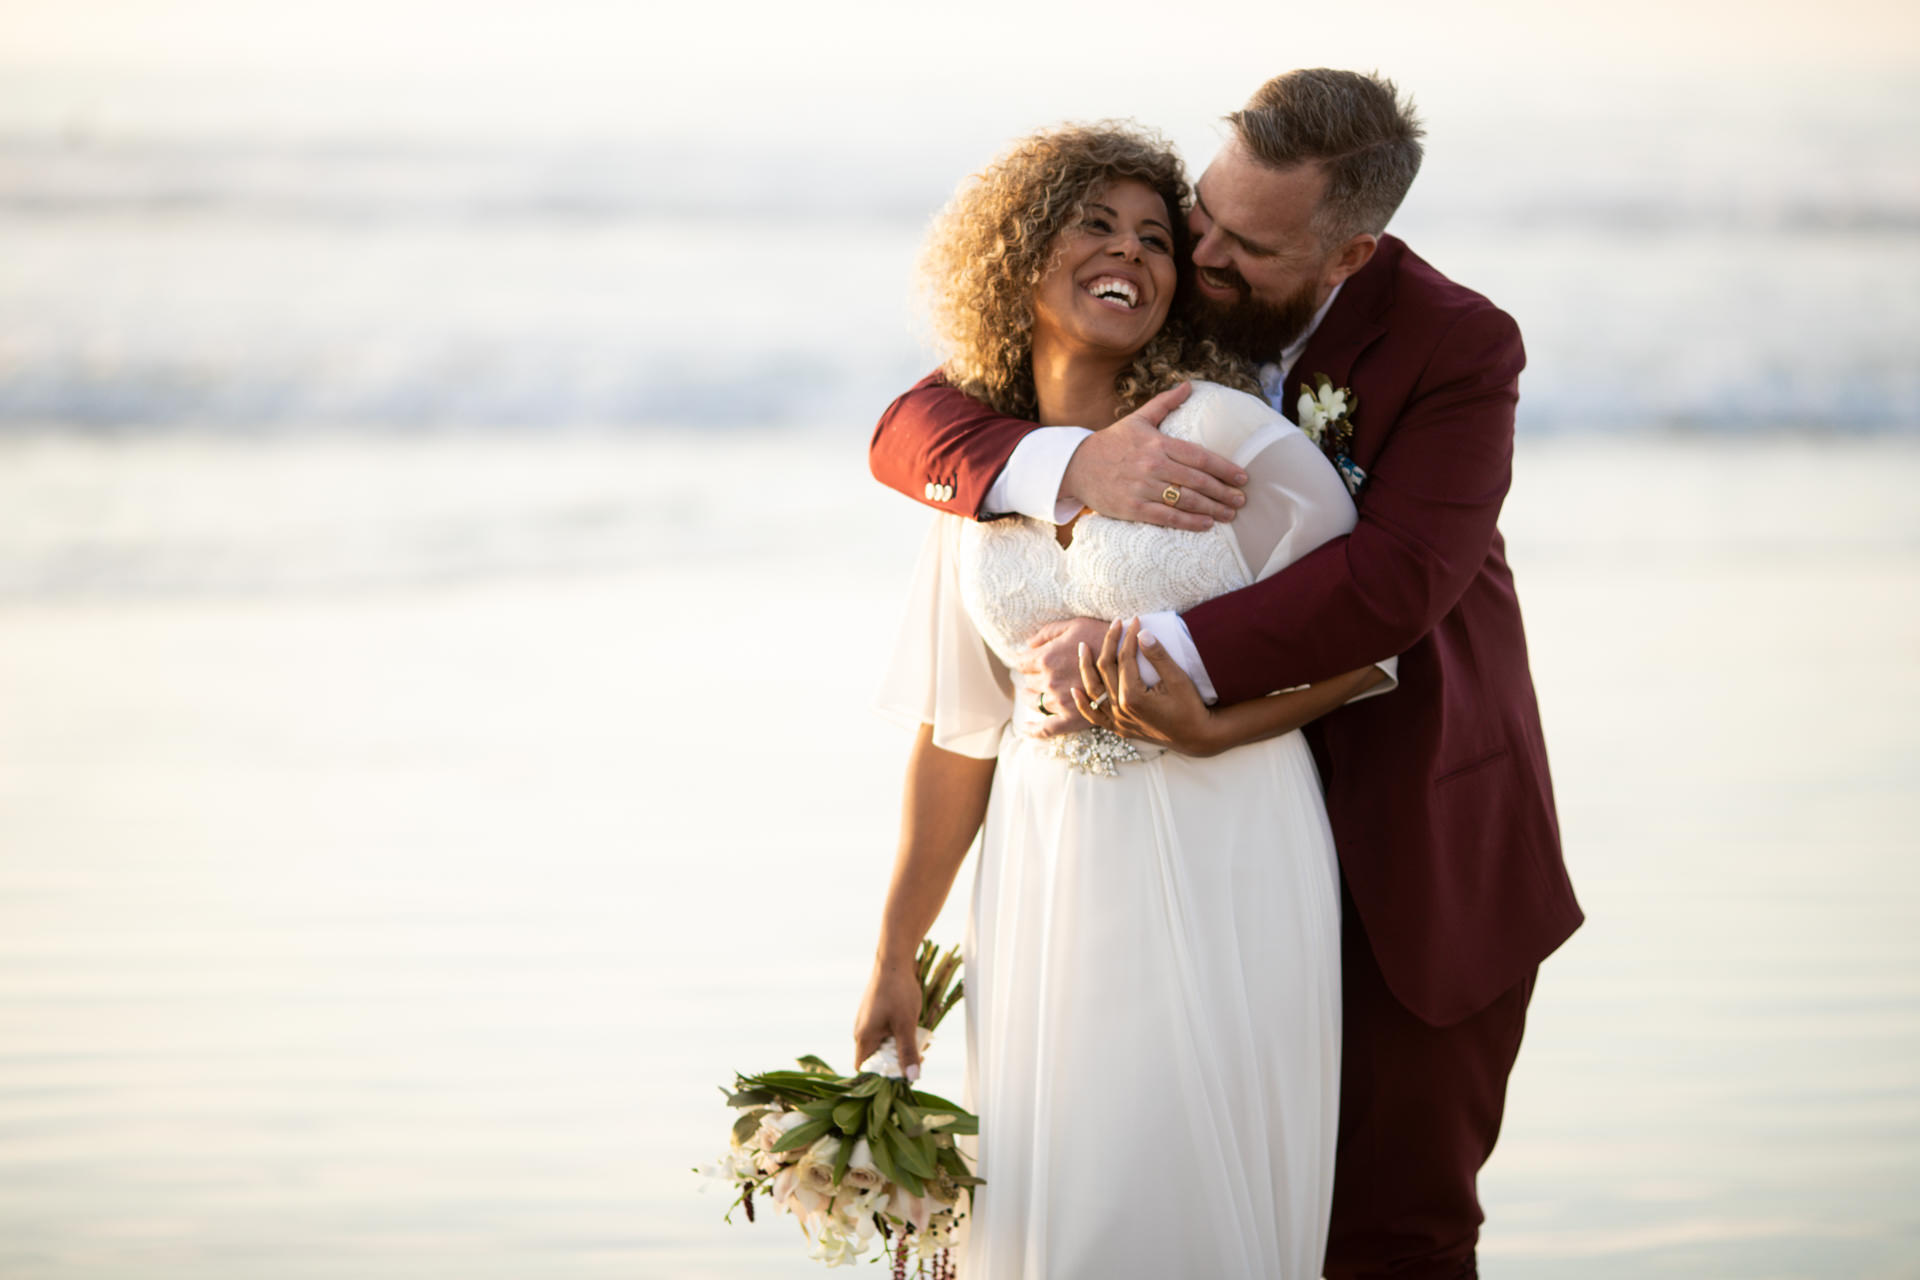 Gerusa Eric La Jolla Beach Wedding by Faces Photography